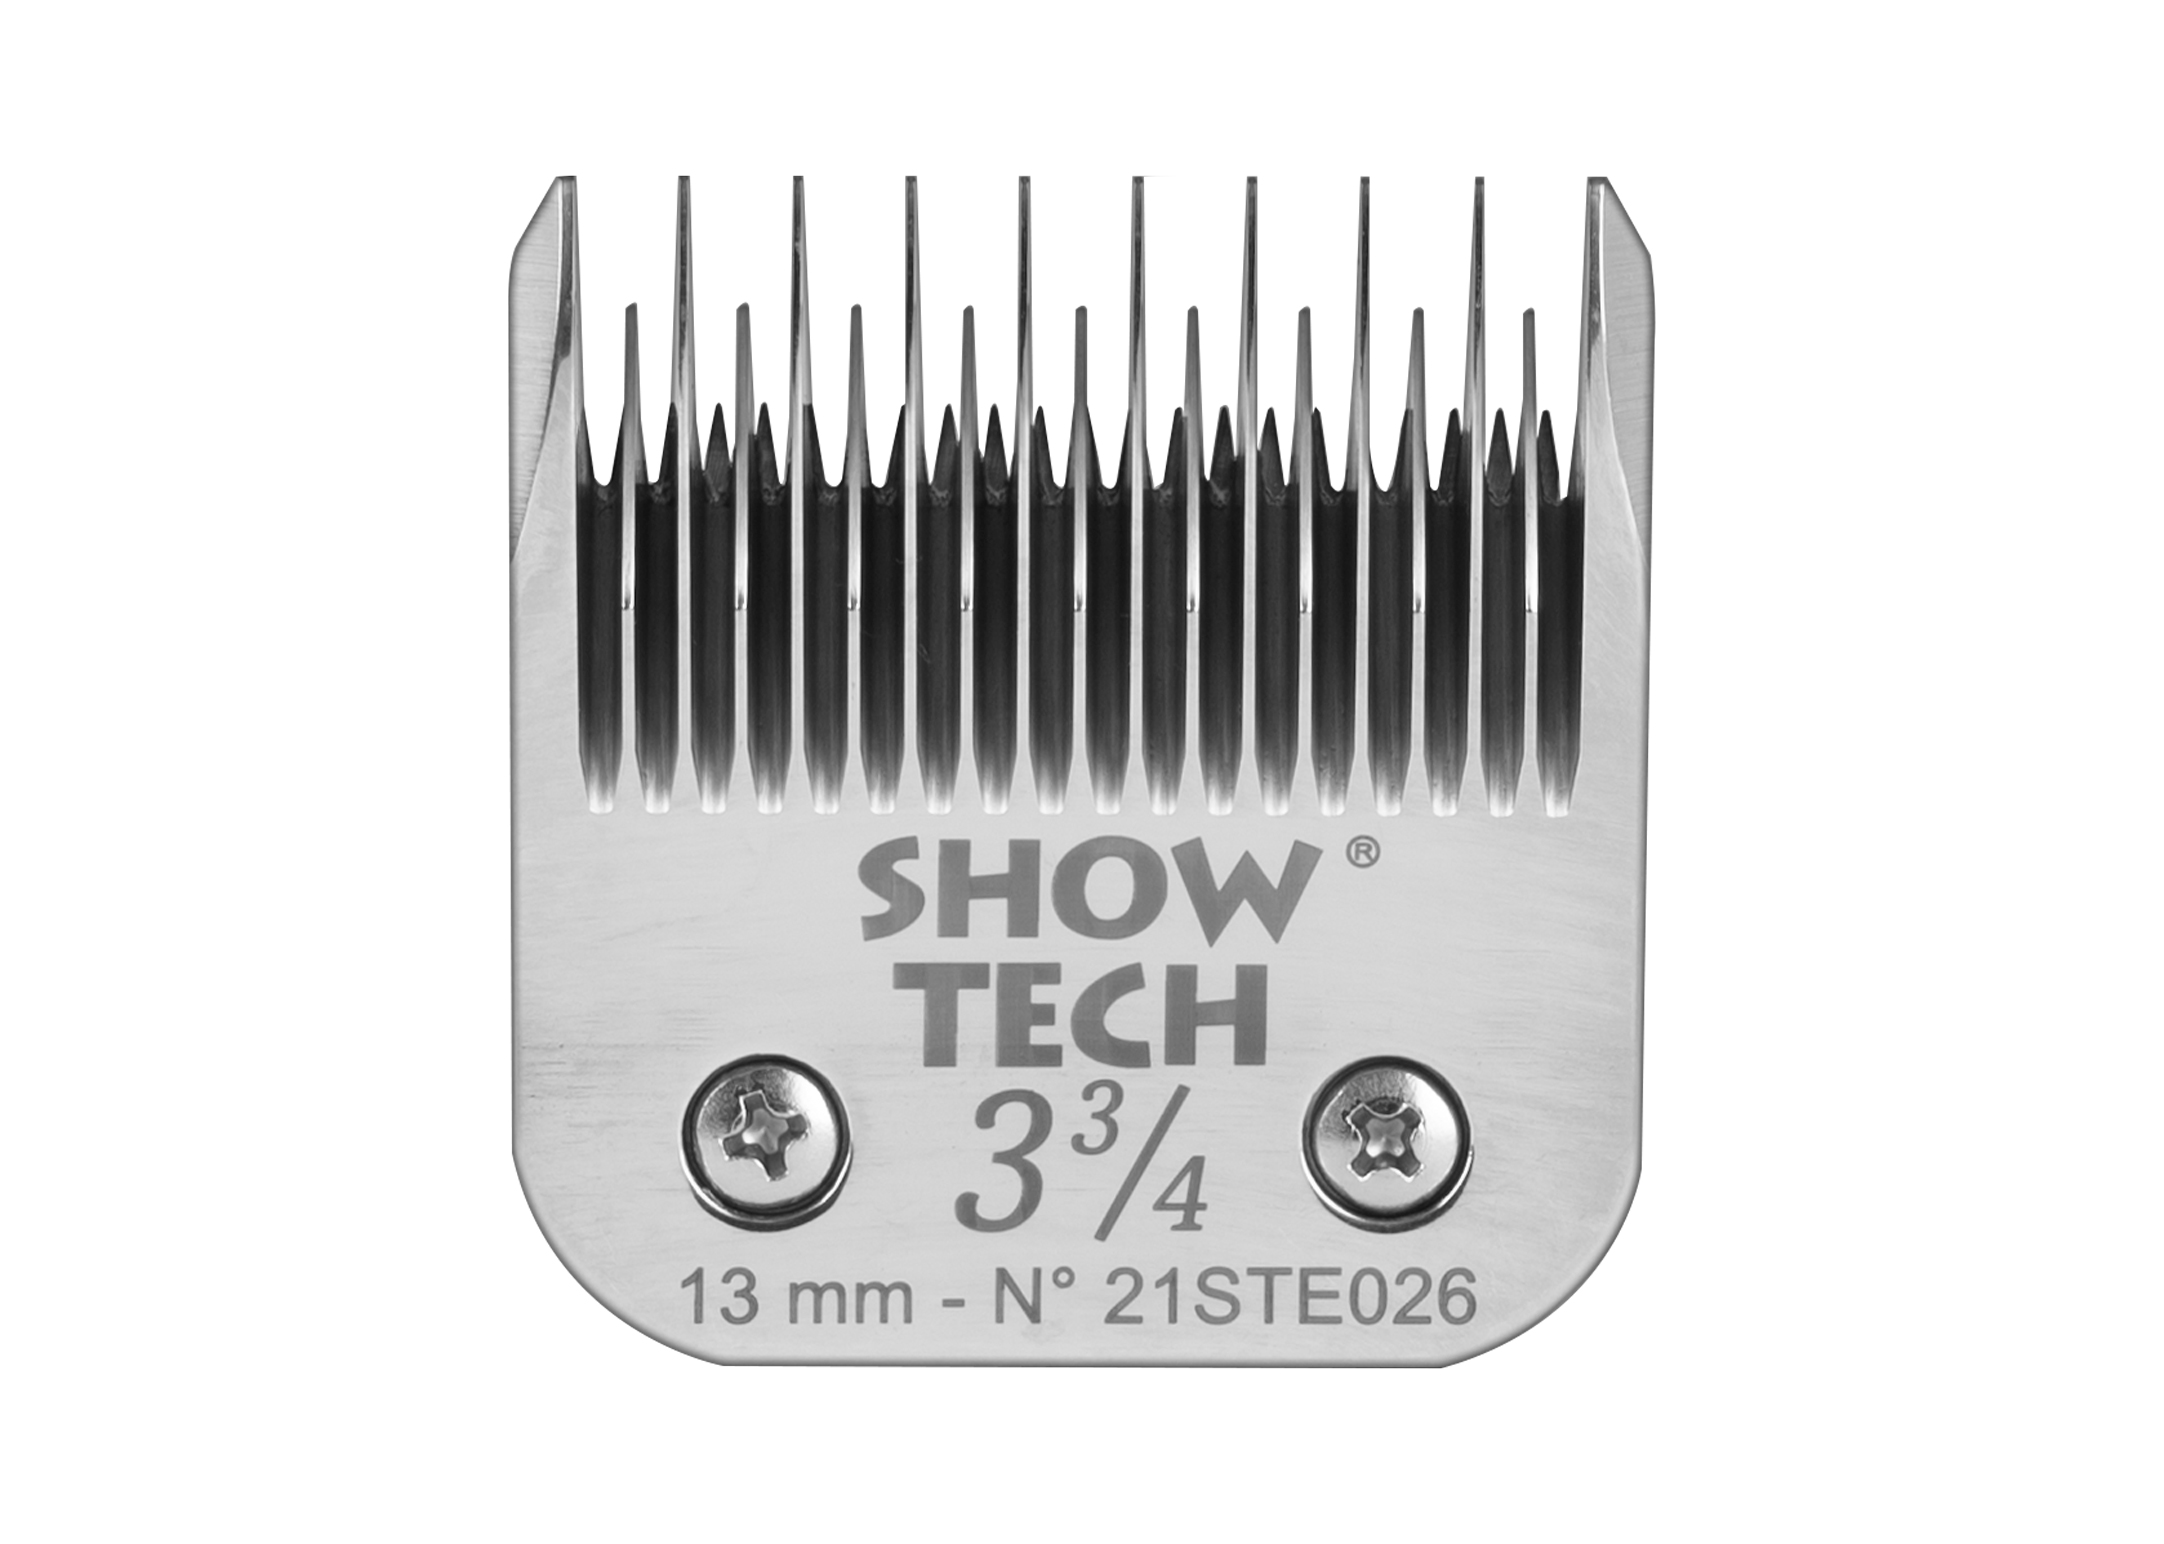 Show Tech Pro Blades snap-on Clipper Blade #3 3/4 - 13mm